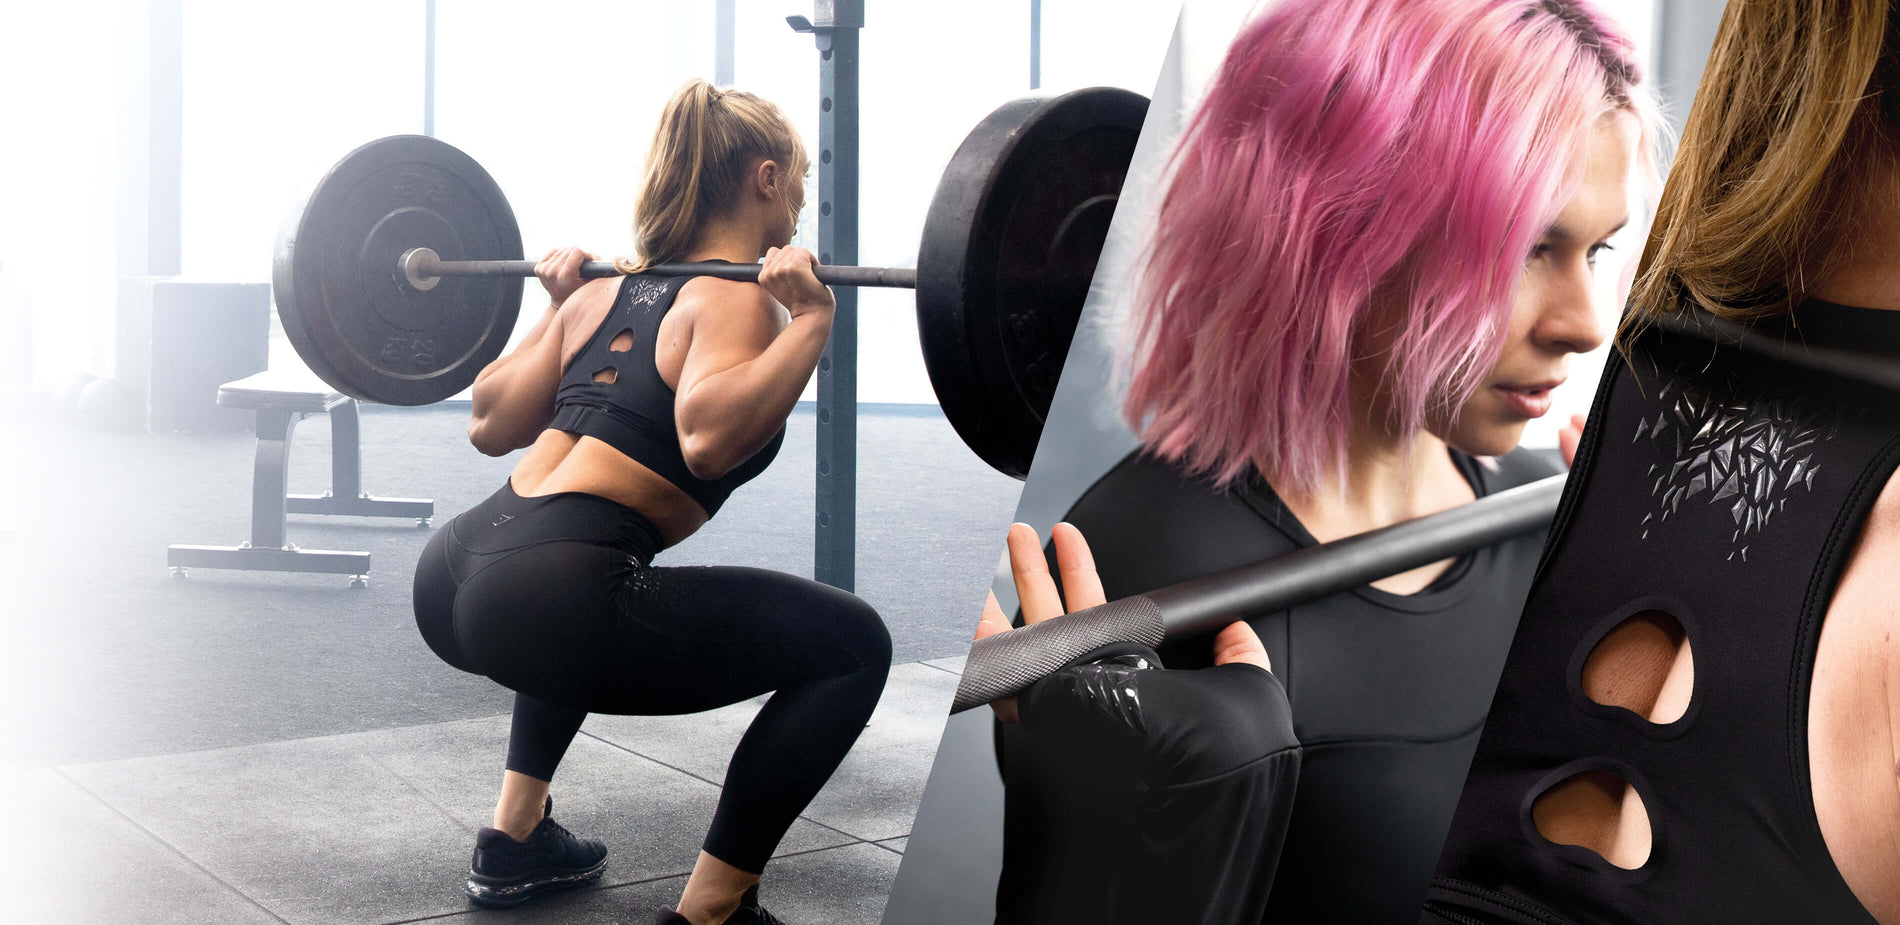 A collage of 3 images featuring 2 female athletes exercising using barbells in a bright gym wearing the EXO collection.